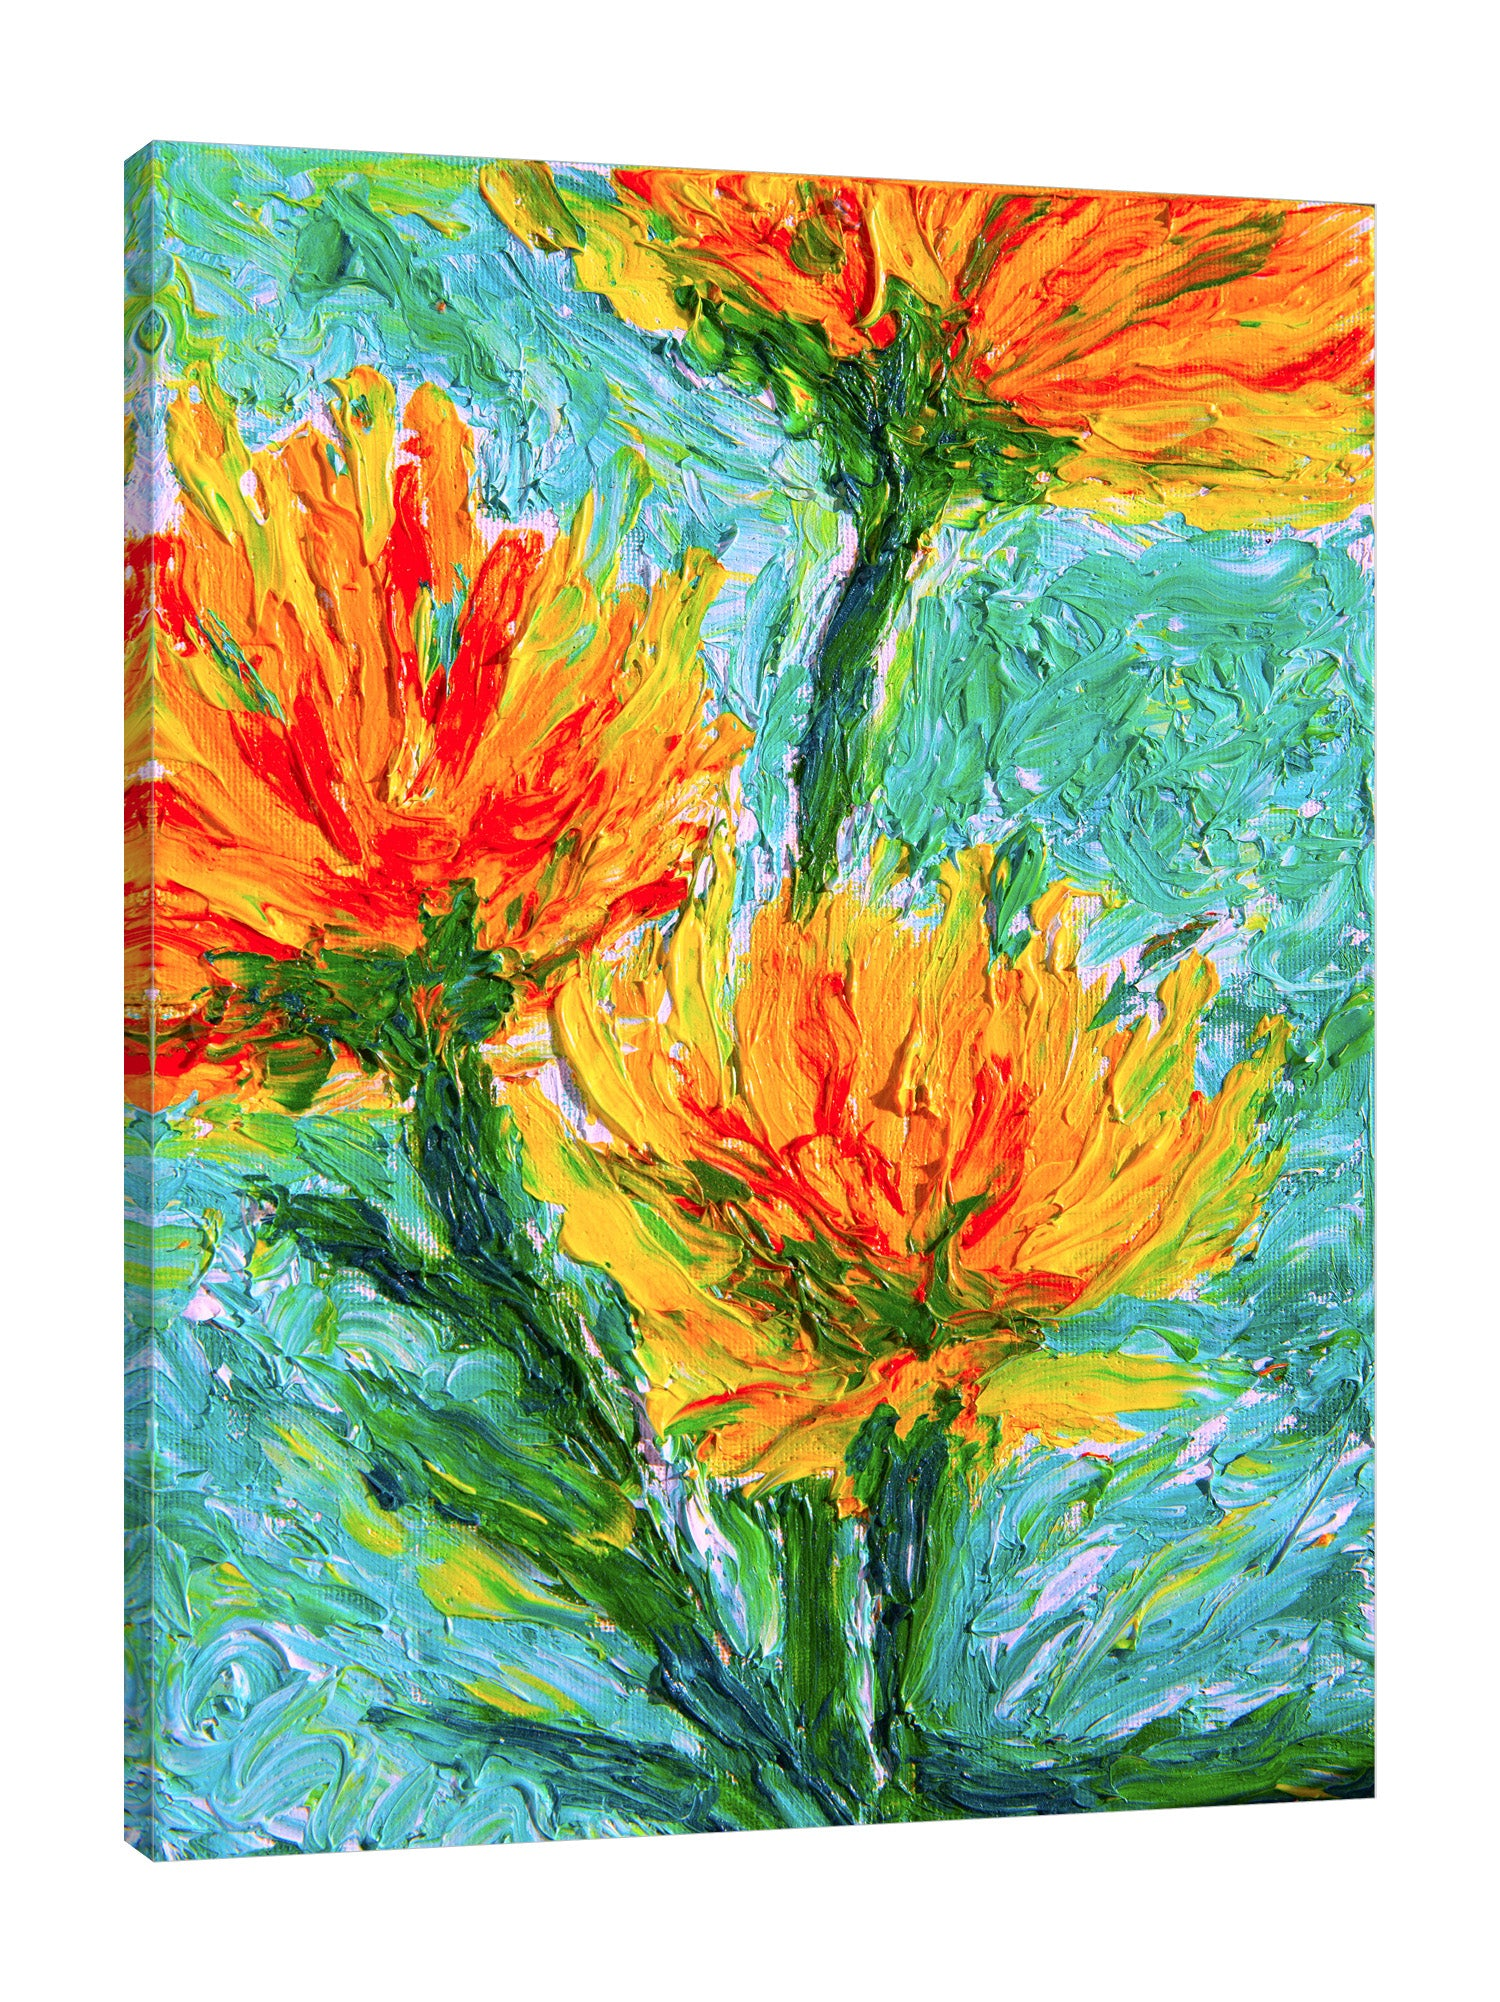 Chiara-Magni,Modern & Contemporary,Floral & Botanical,Finger-paint,florals,flowers,floral,flower,botanical,yellow,orange,red,green,strokes,